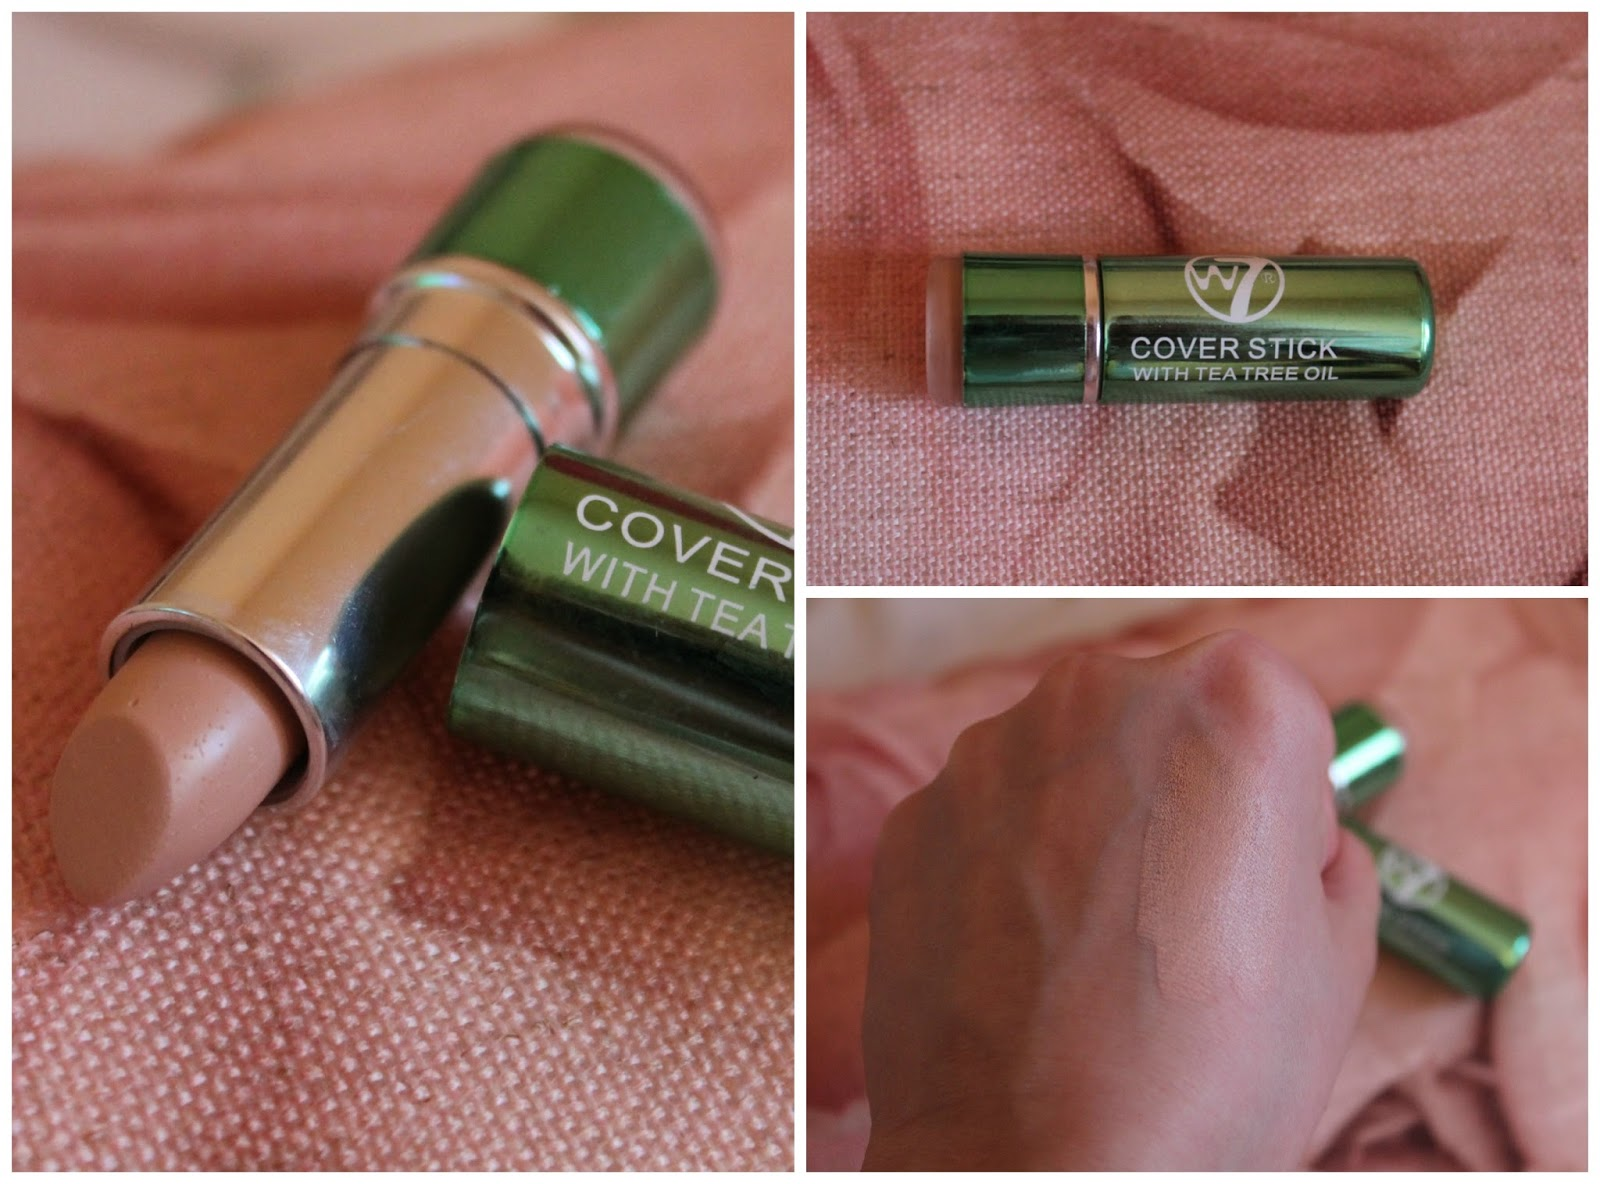 W7 Tea Tree Concealer Stick